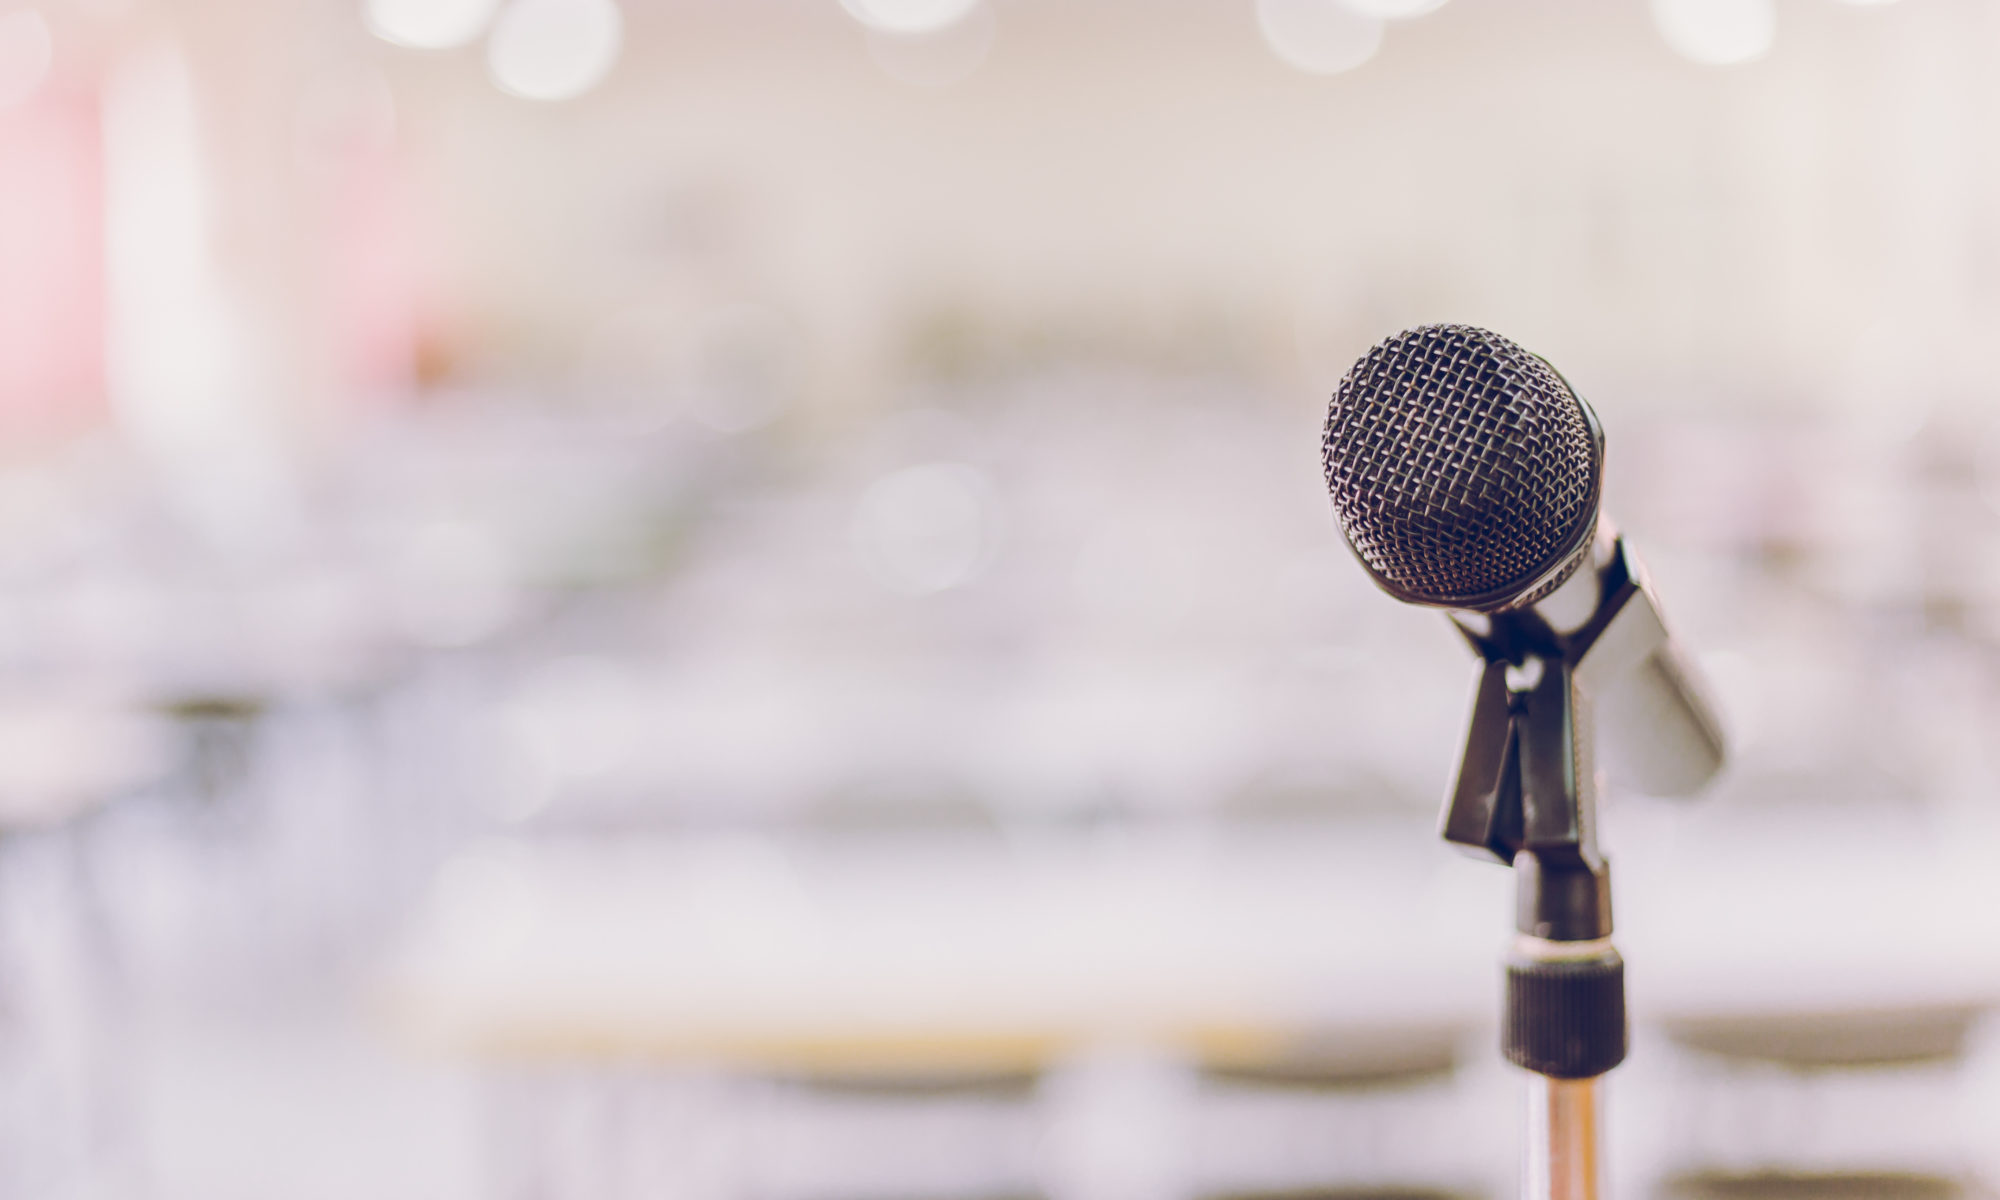 Microphone in focus at front of room